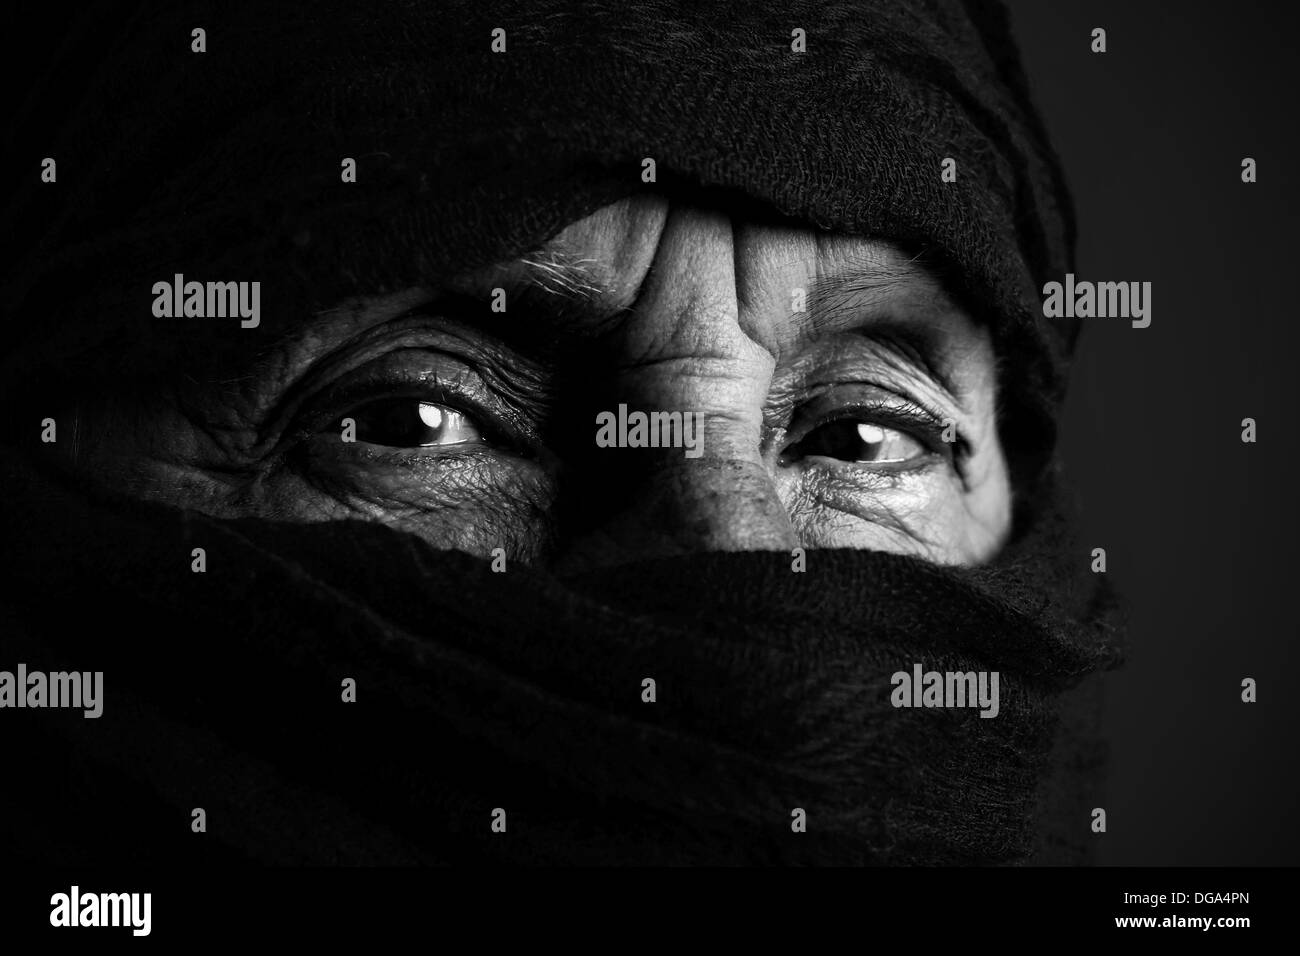 Eyes of senior muslim woman with niqab, looking at camera, black and white - Stock Image